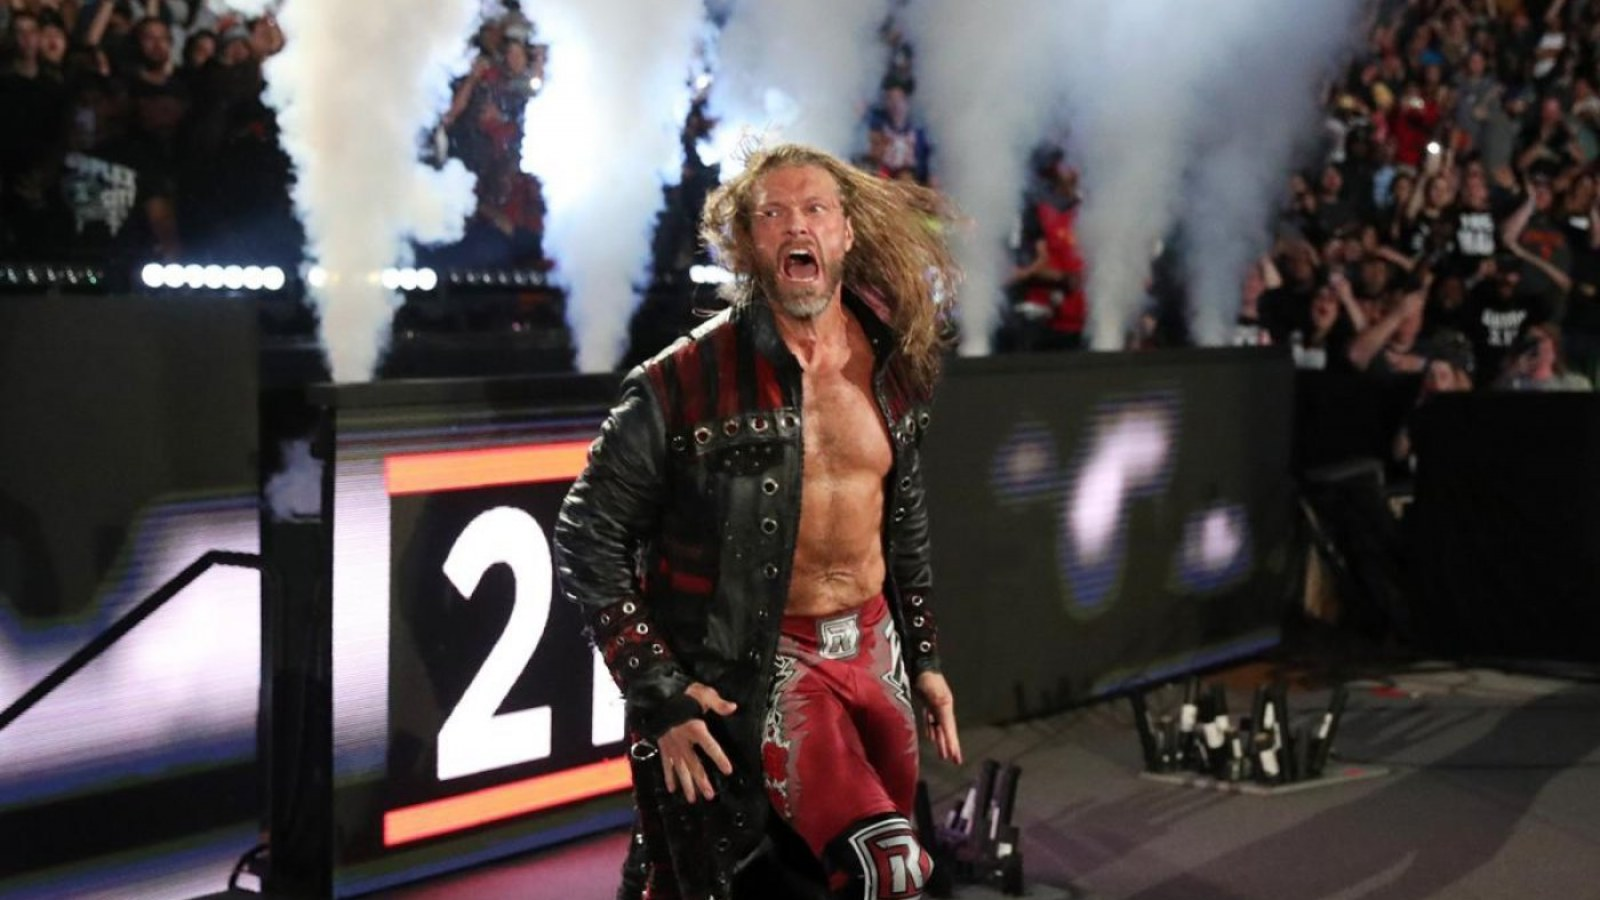 Edge Makes Surprise Return at the WWE 'Royal Rumble' Event